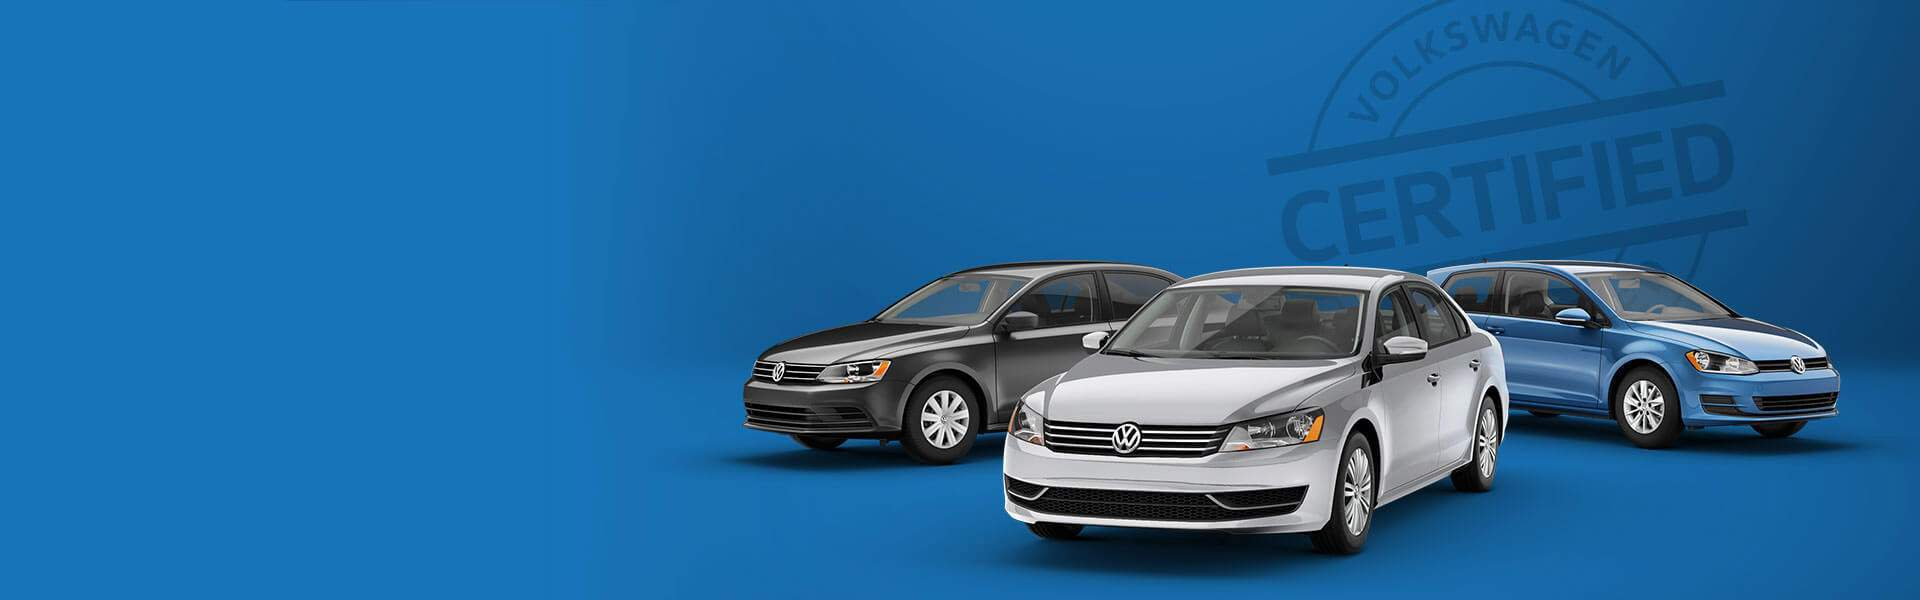 Volkswagen Certified Pre-Owned in Lower Burrell, PA